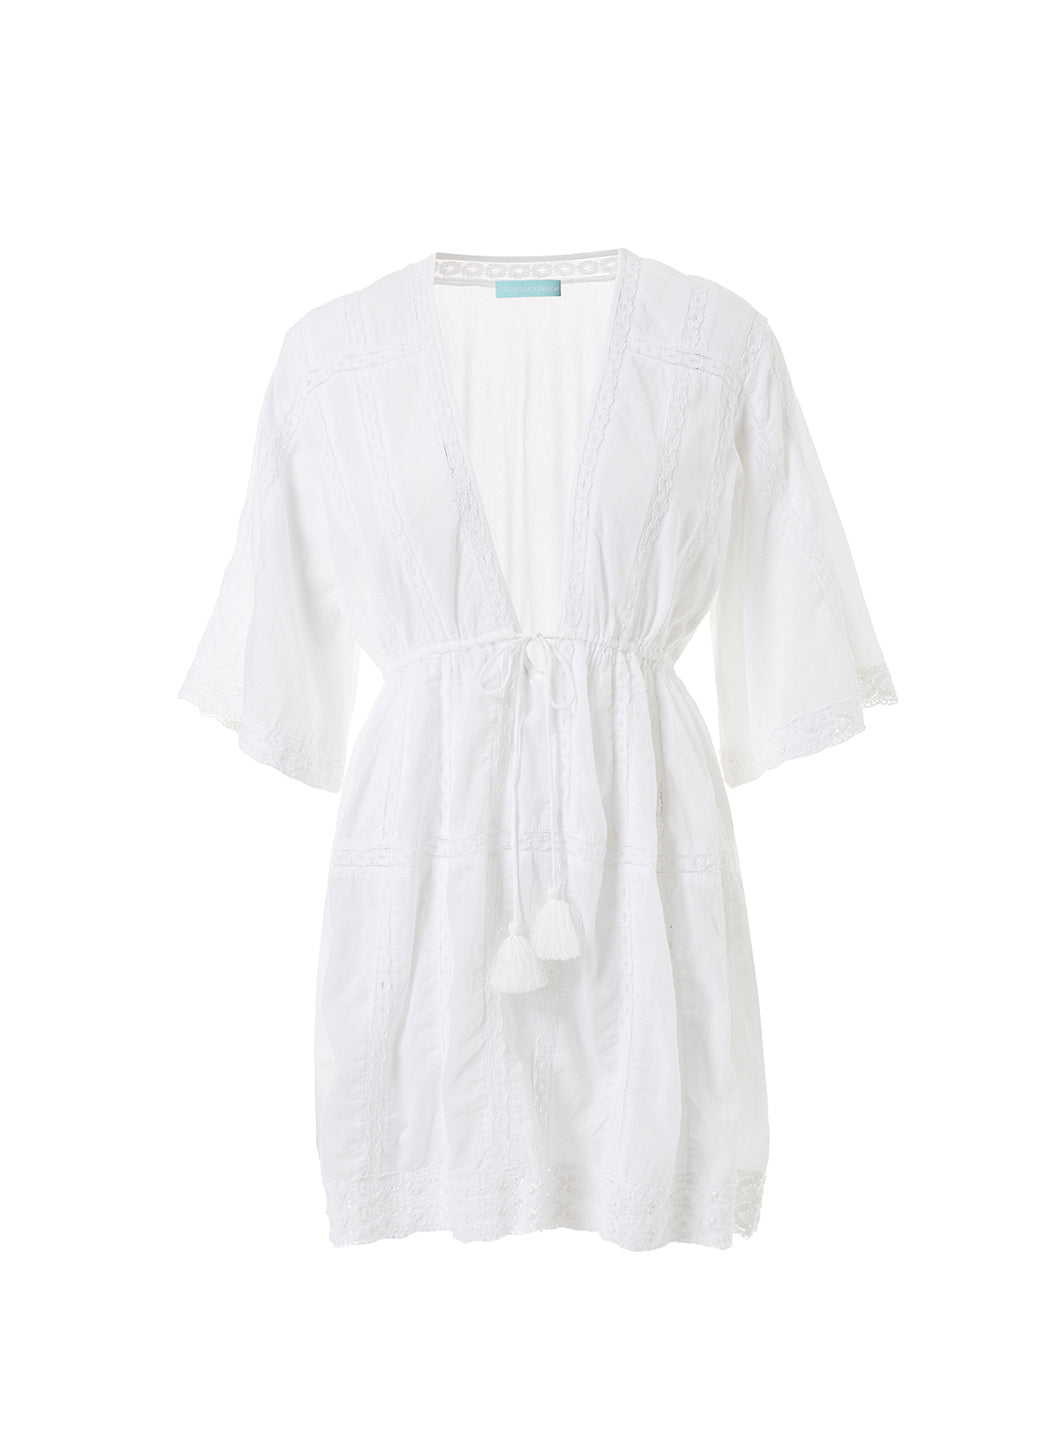 Jade White V-Neck 3/4 Sleeve Beach Dress